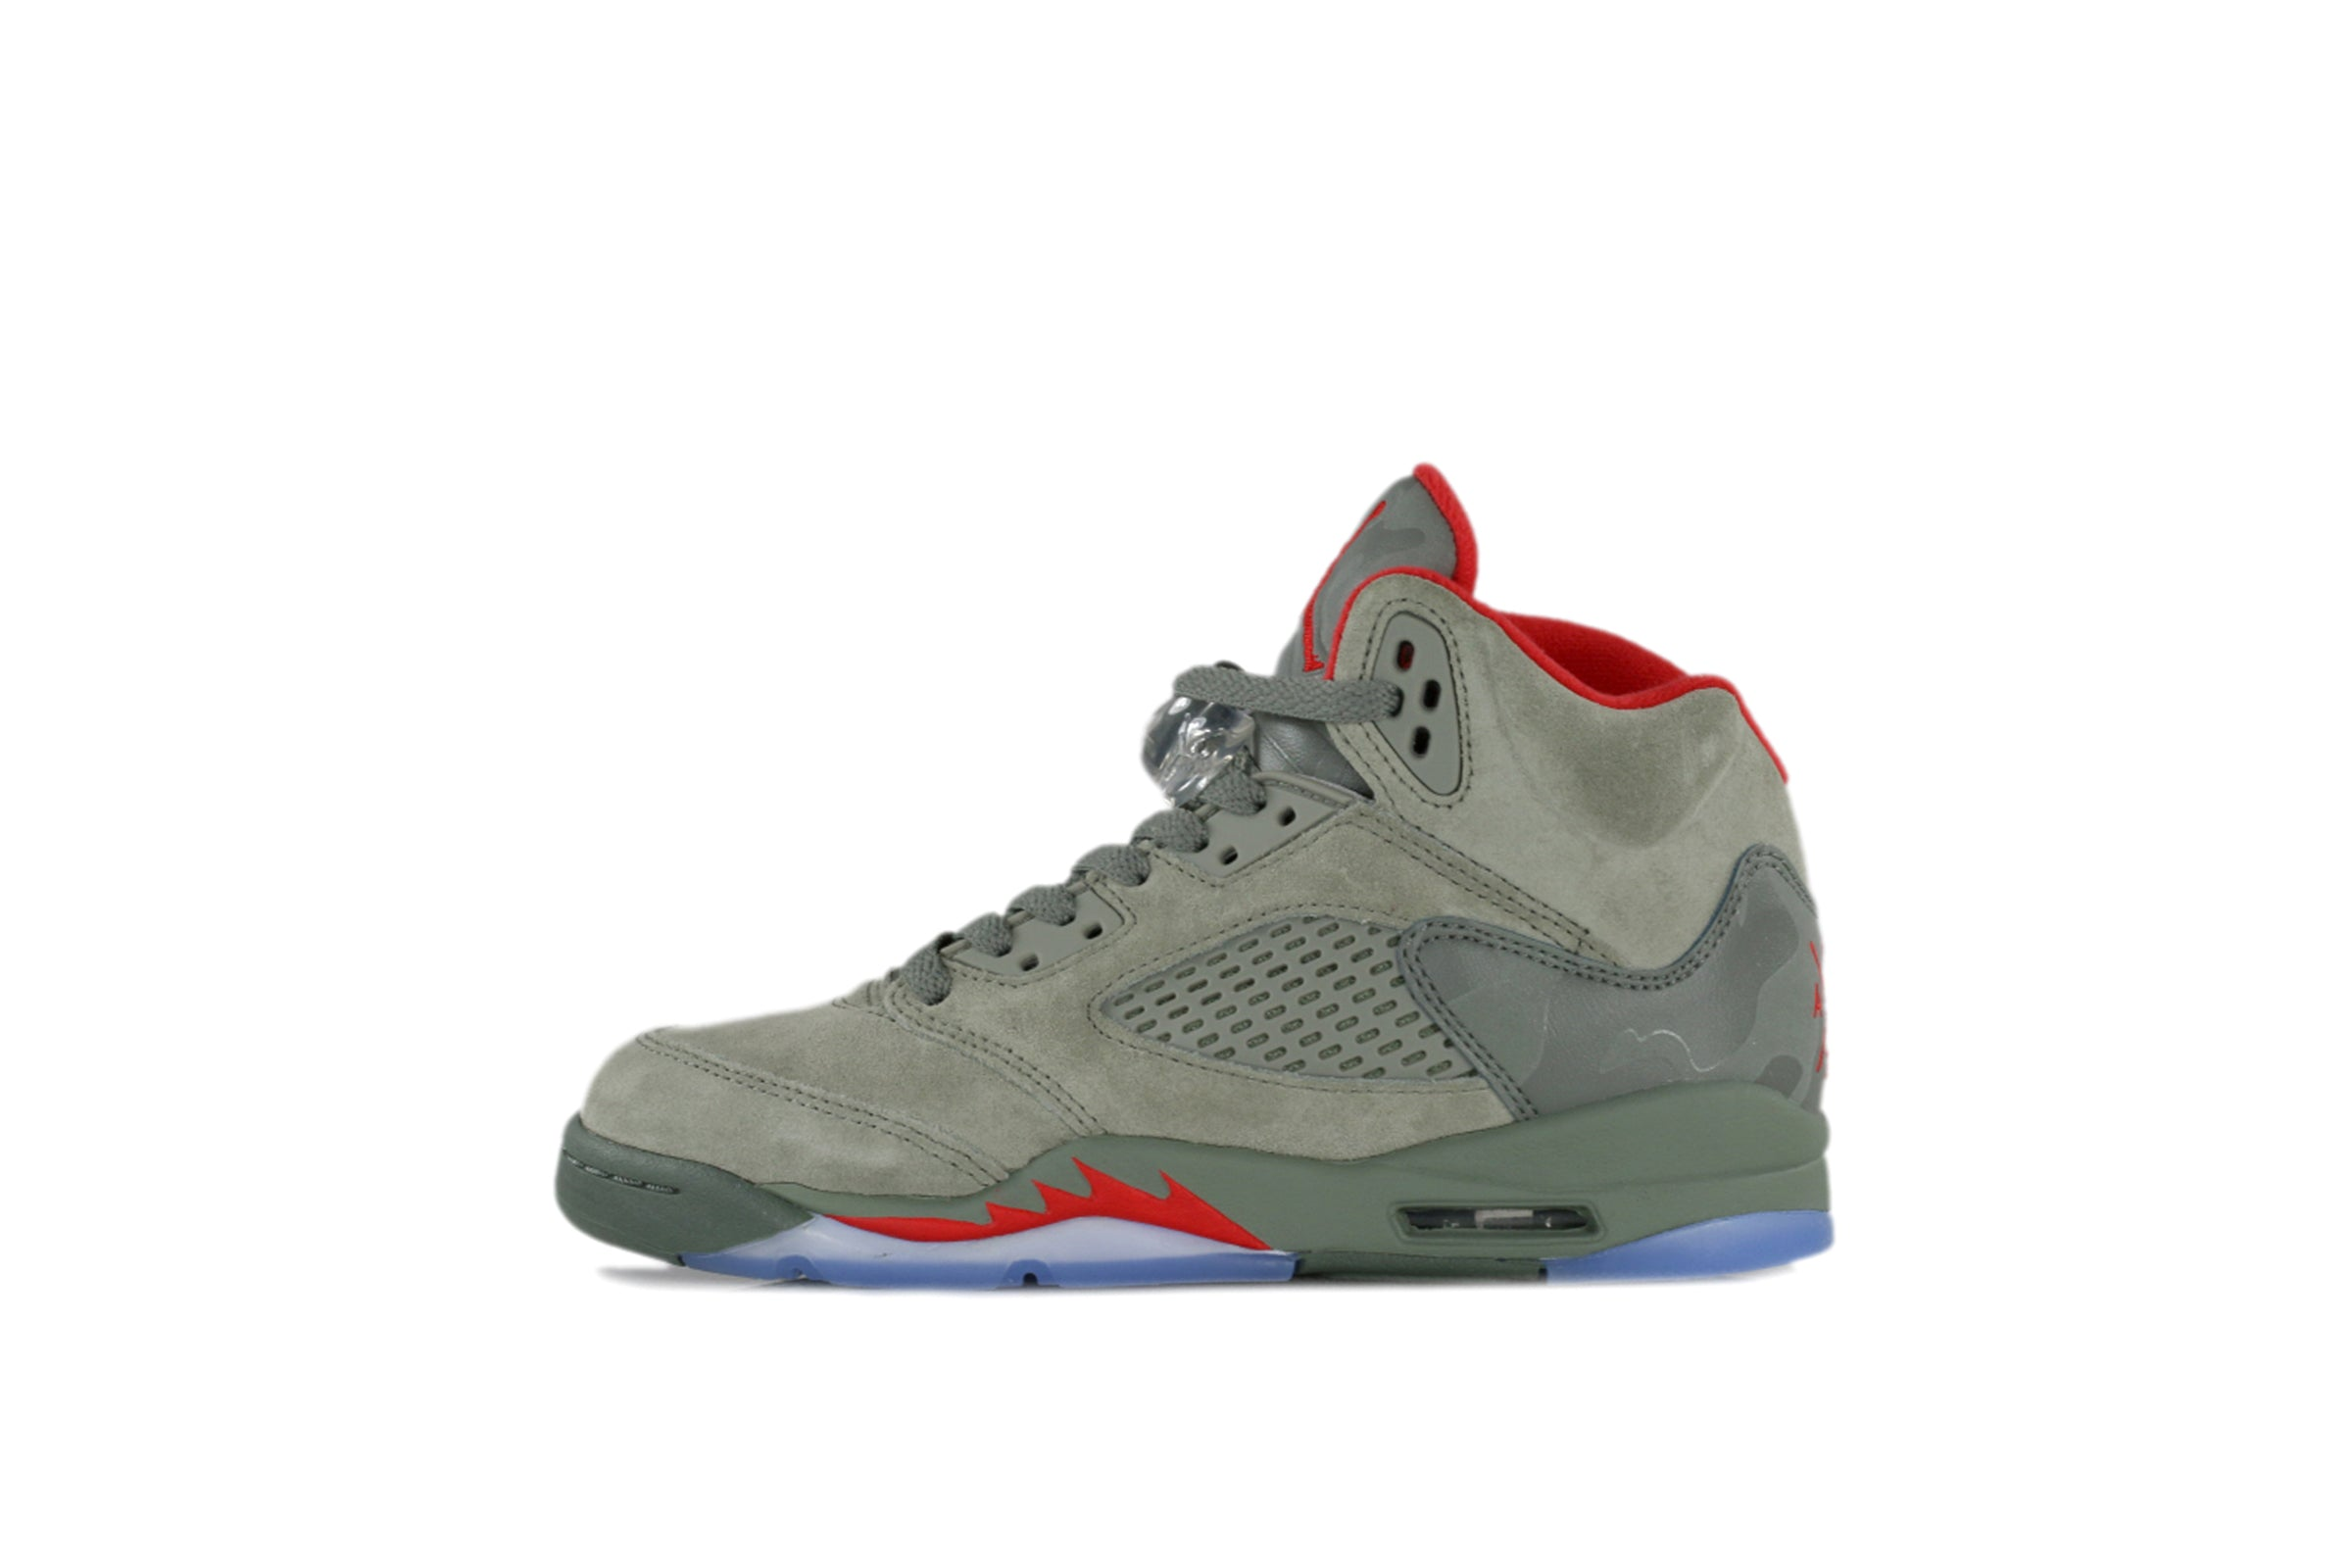 Nike Air Jordan 5 Retro BG